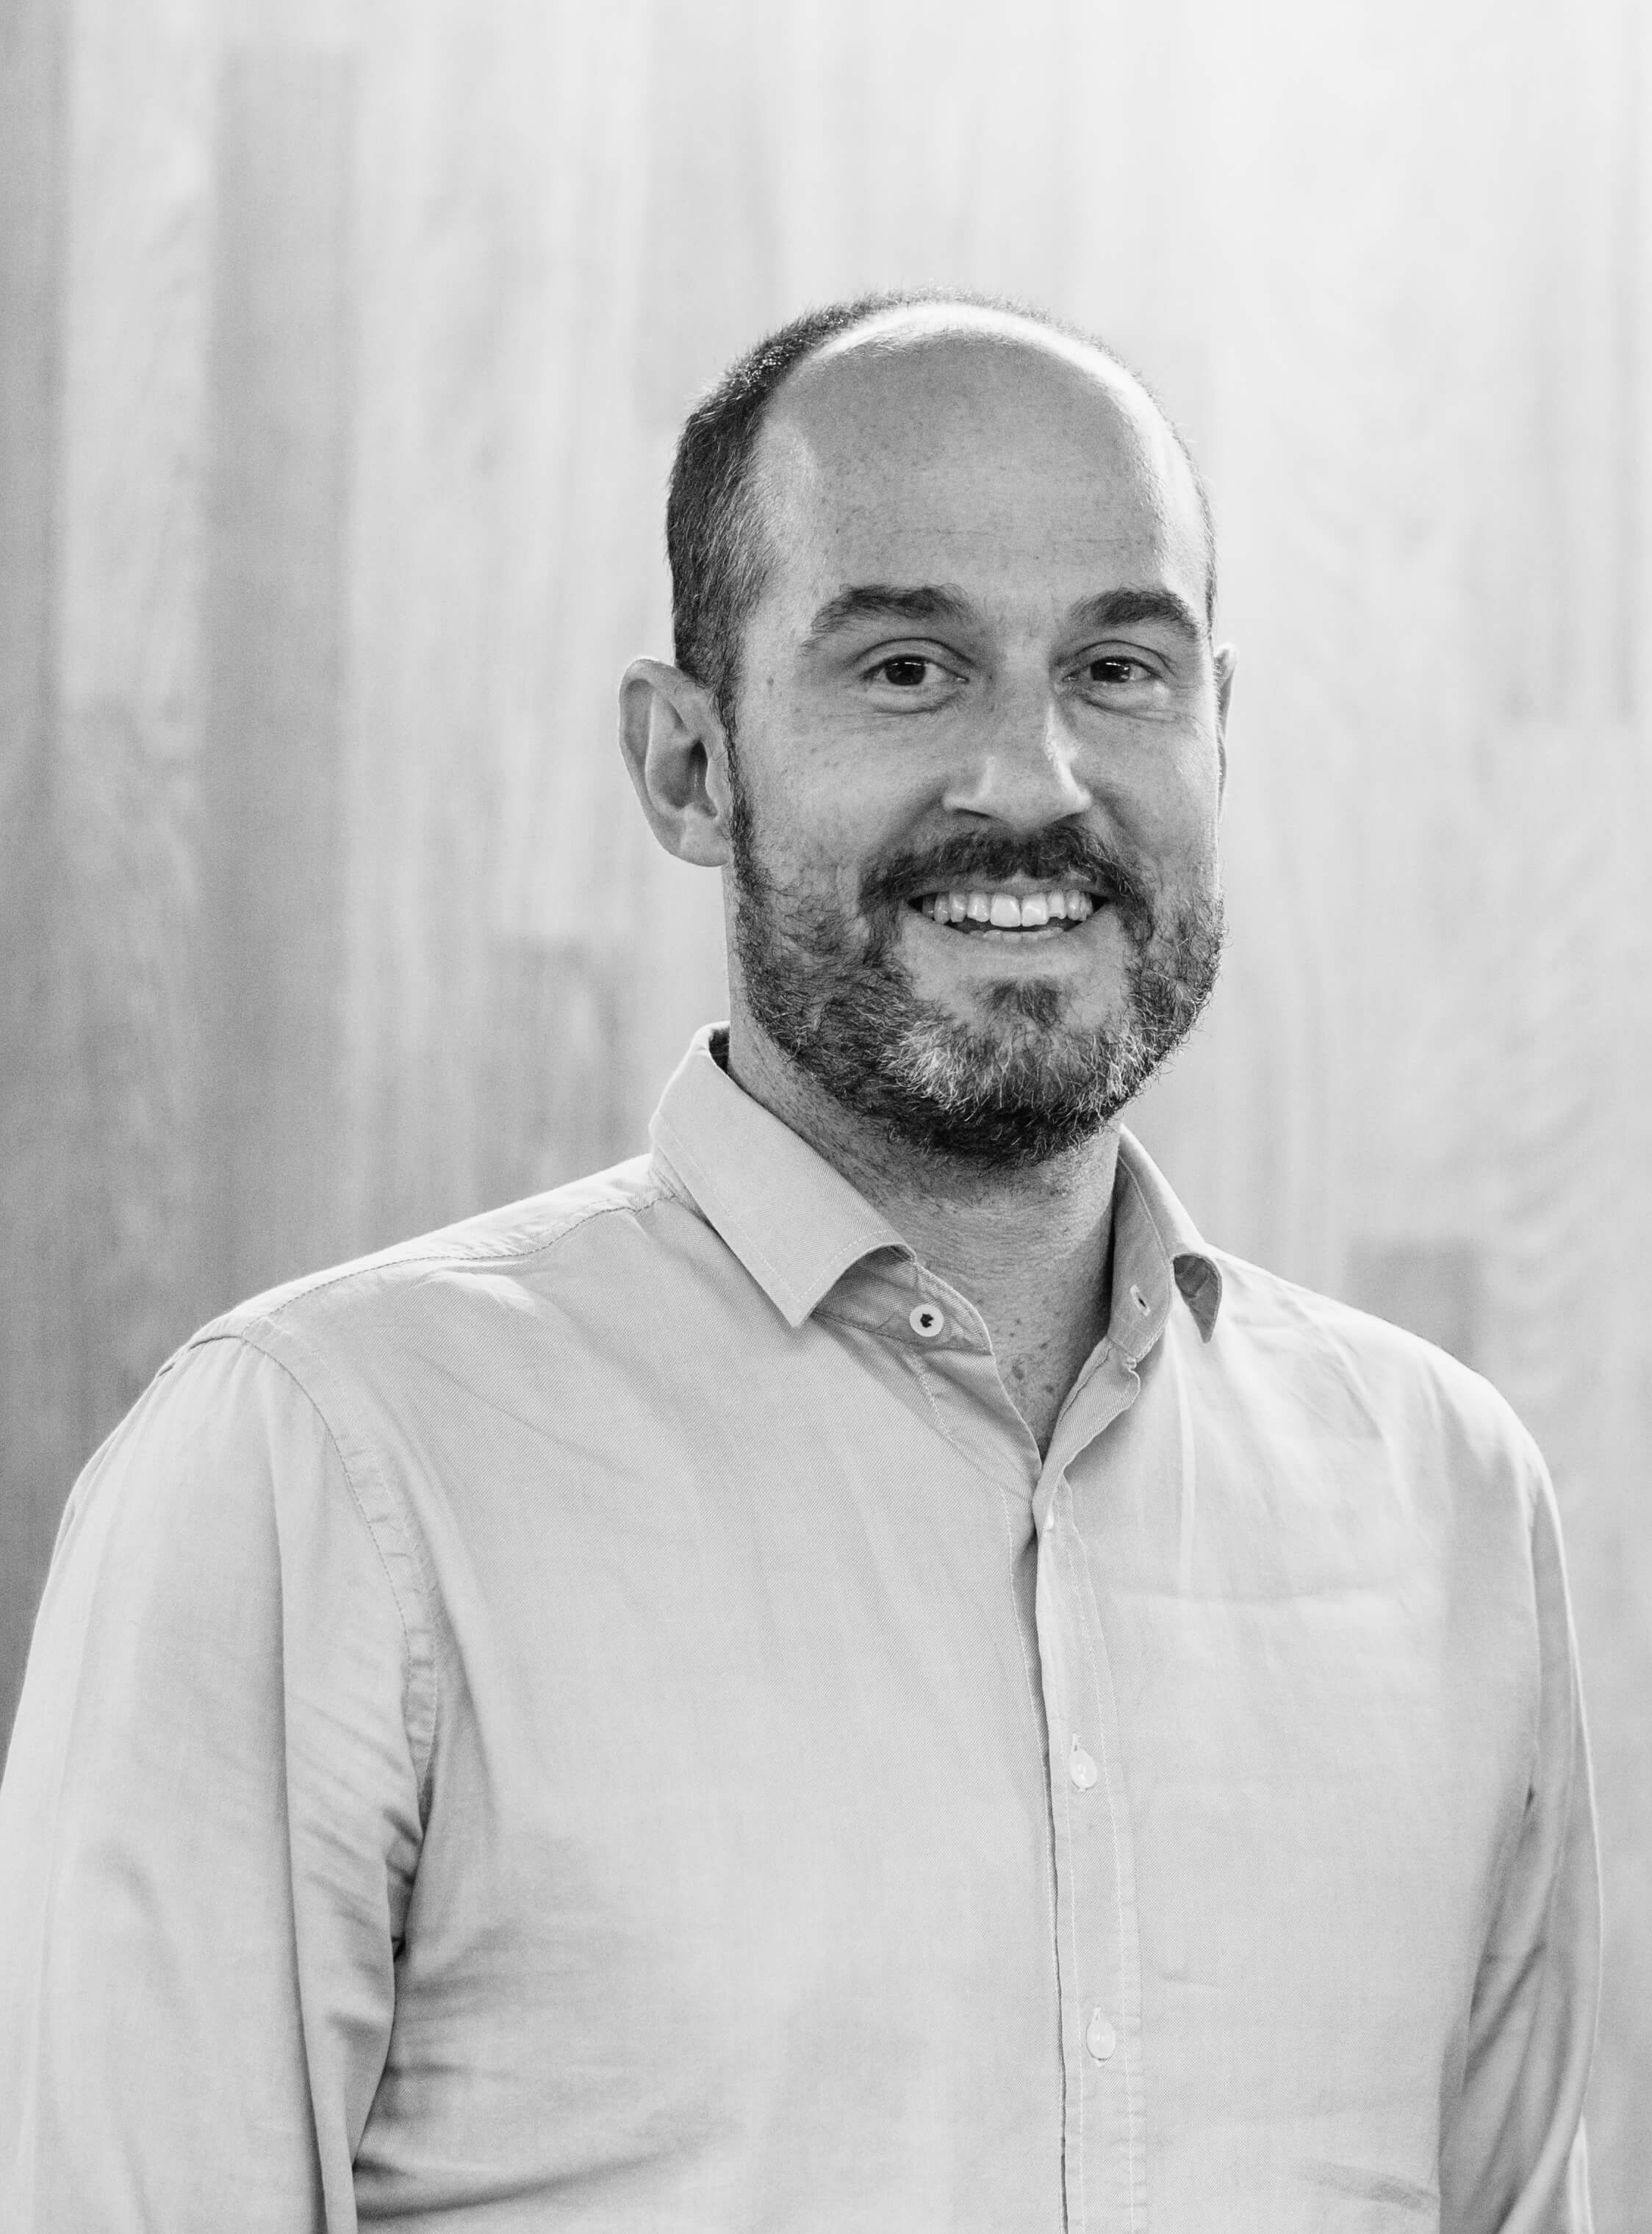 Episode 034 - Joel Phillips, CEO Pig.gi & Founder at Siglo